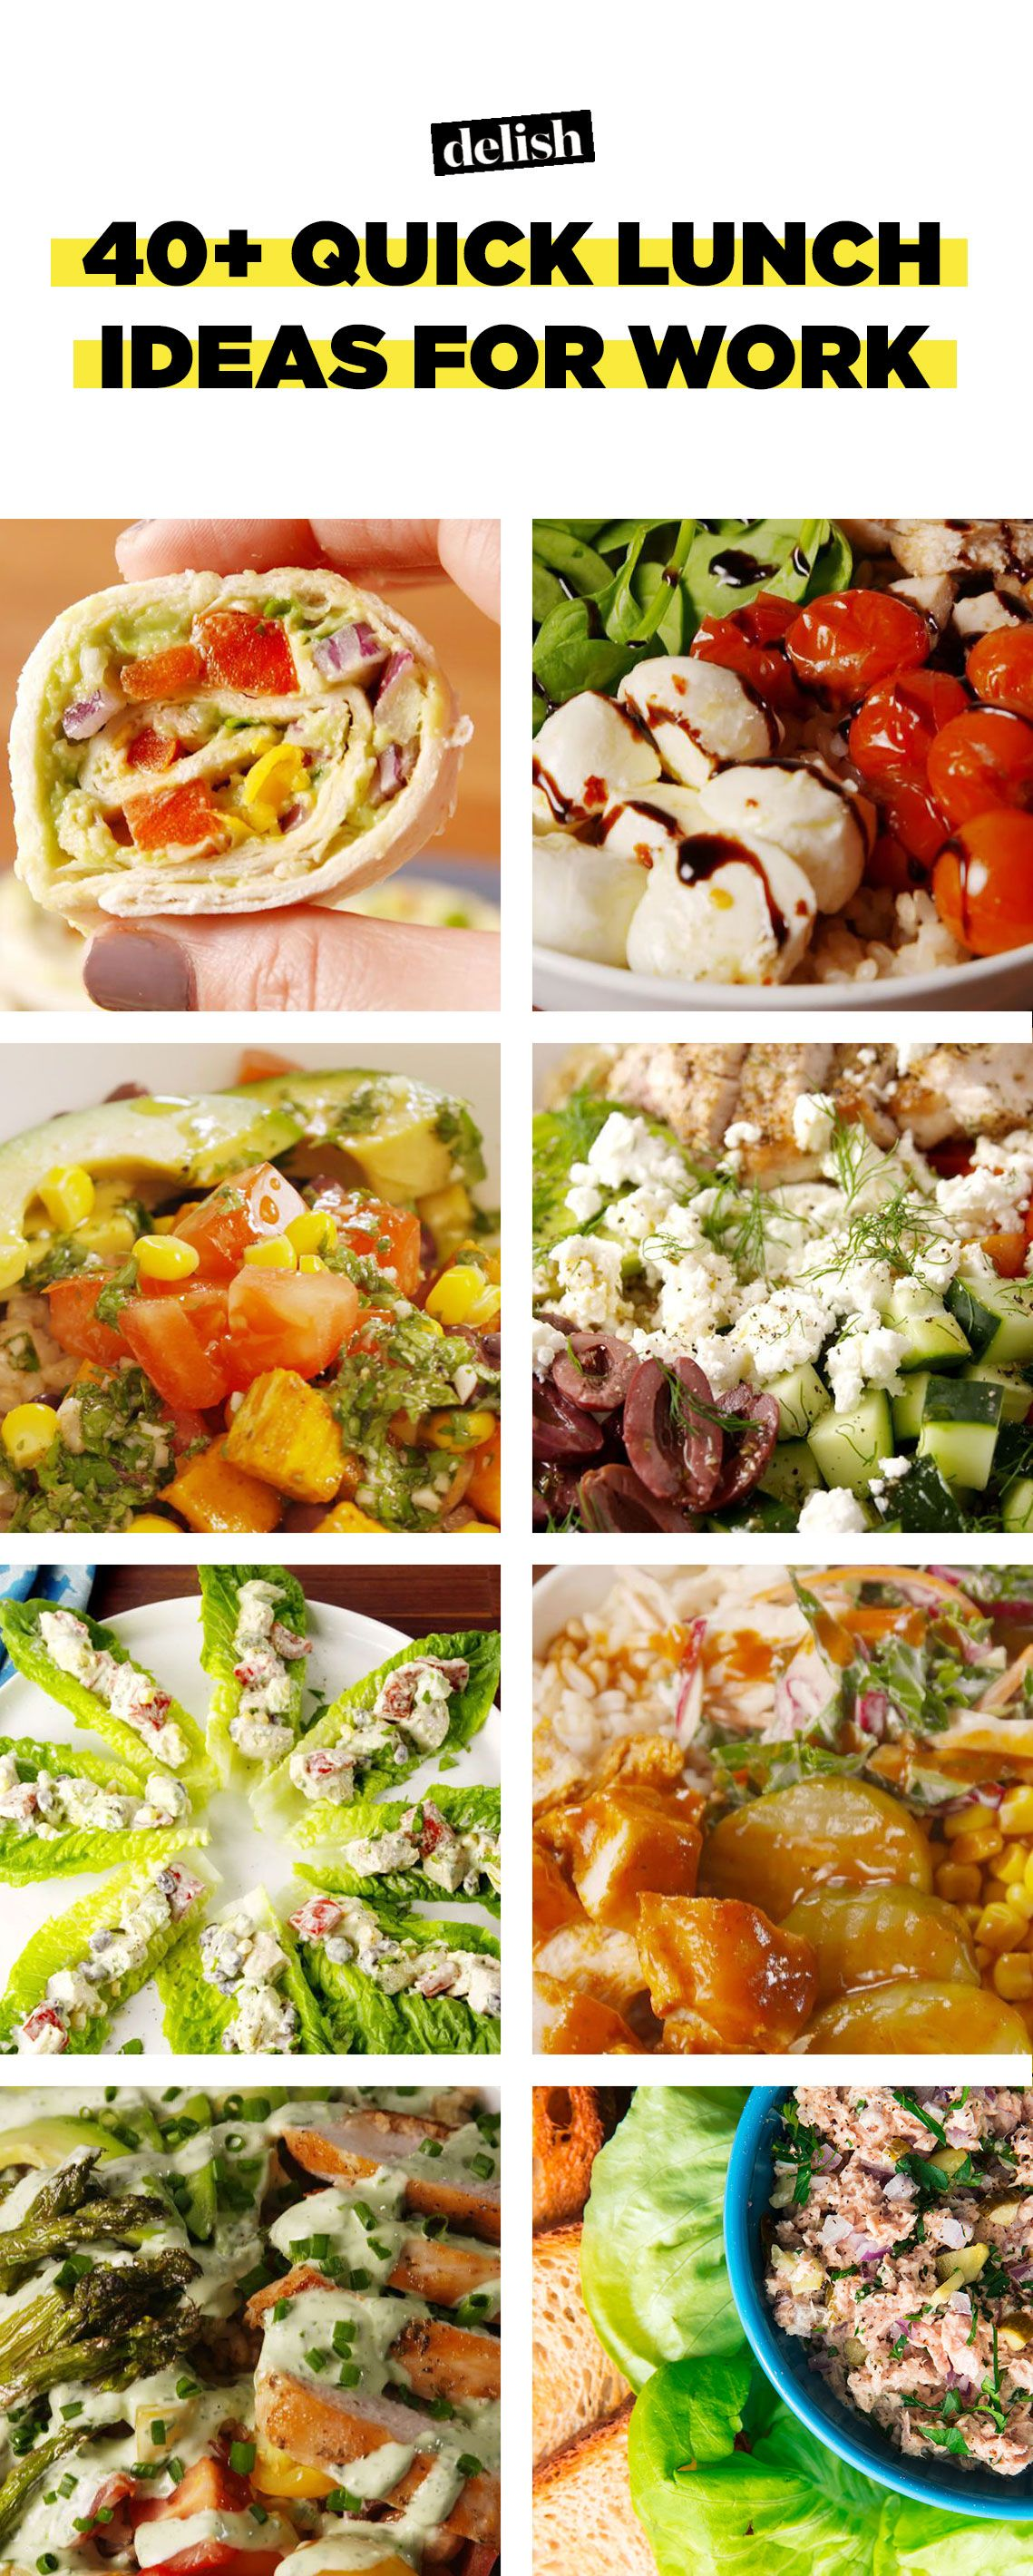 40 Quick Lunch Ideas For Work Recipes Fast Lunches Delish